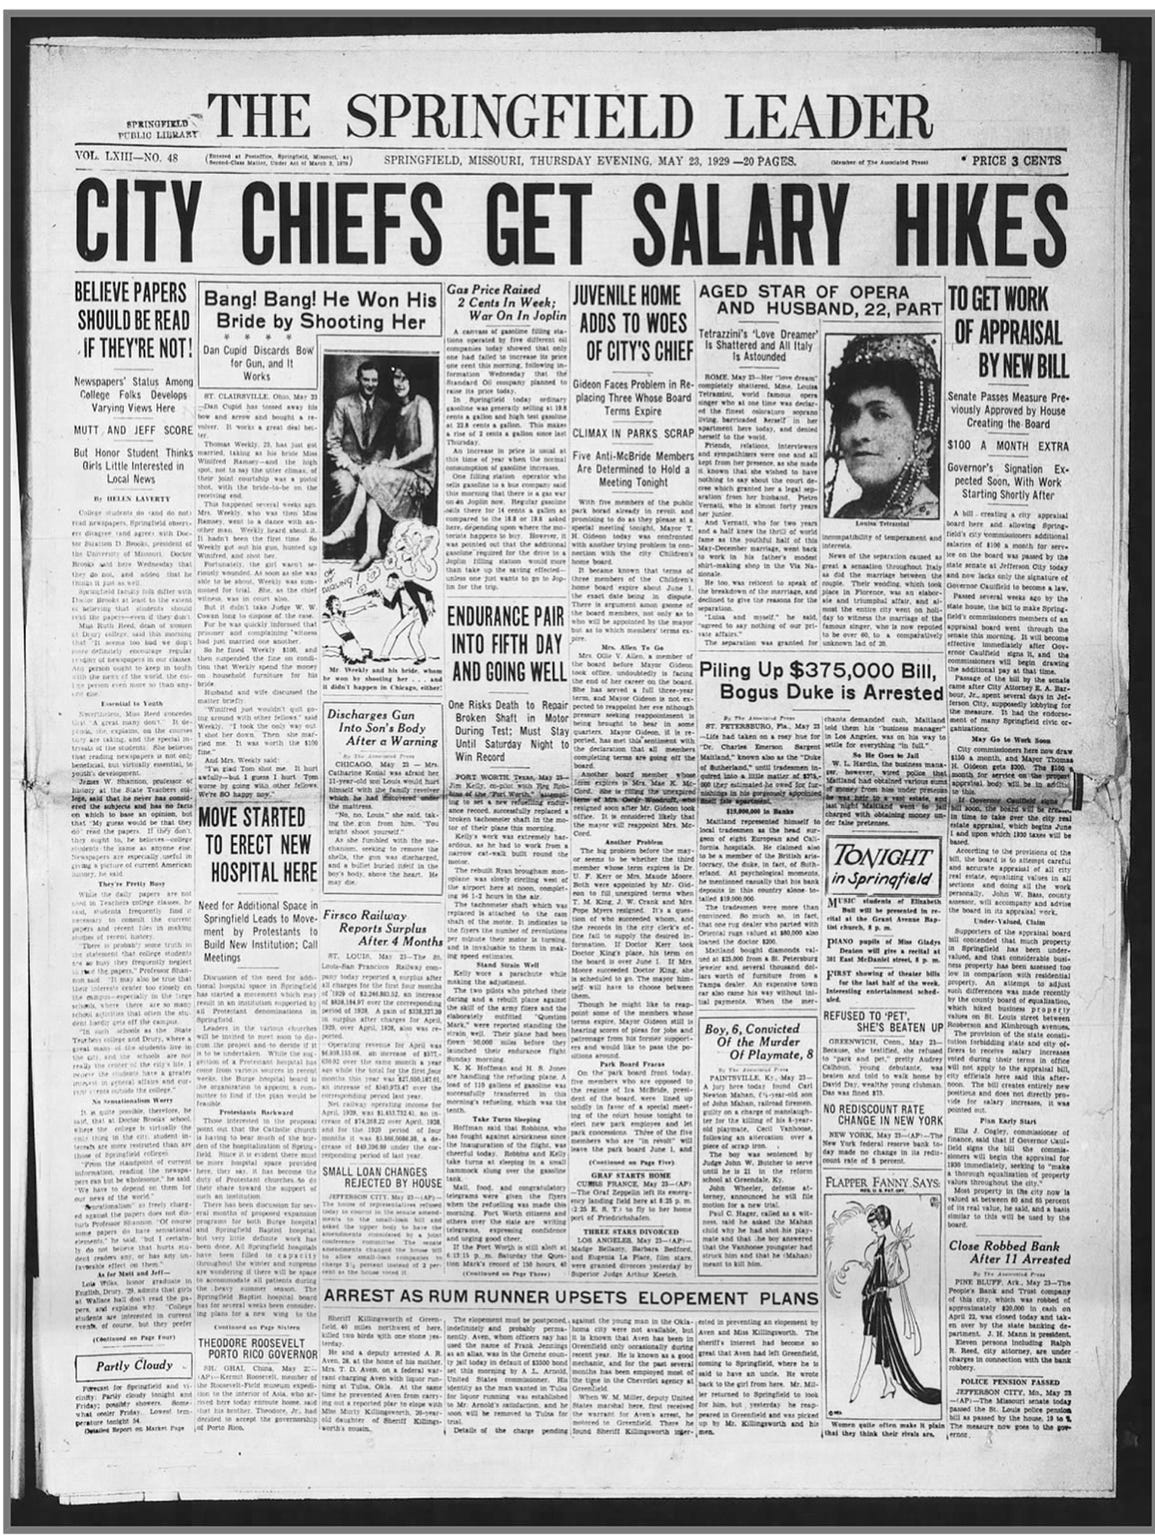 May 23, 1929, edition of the Leader.